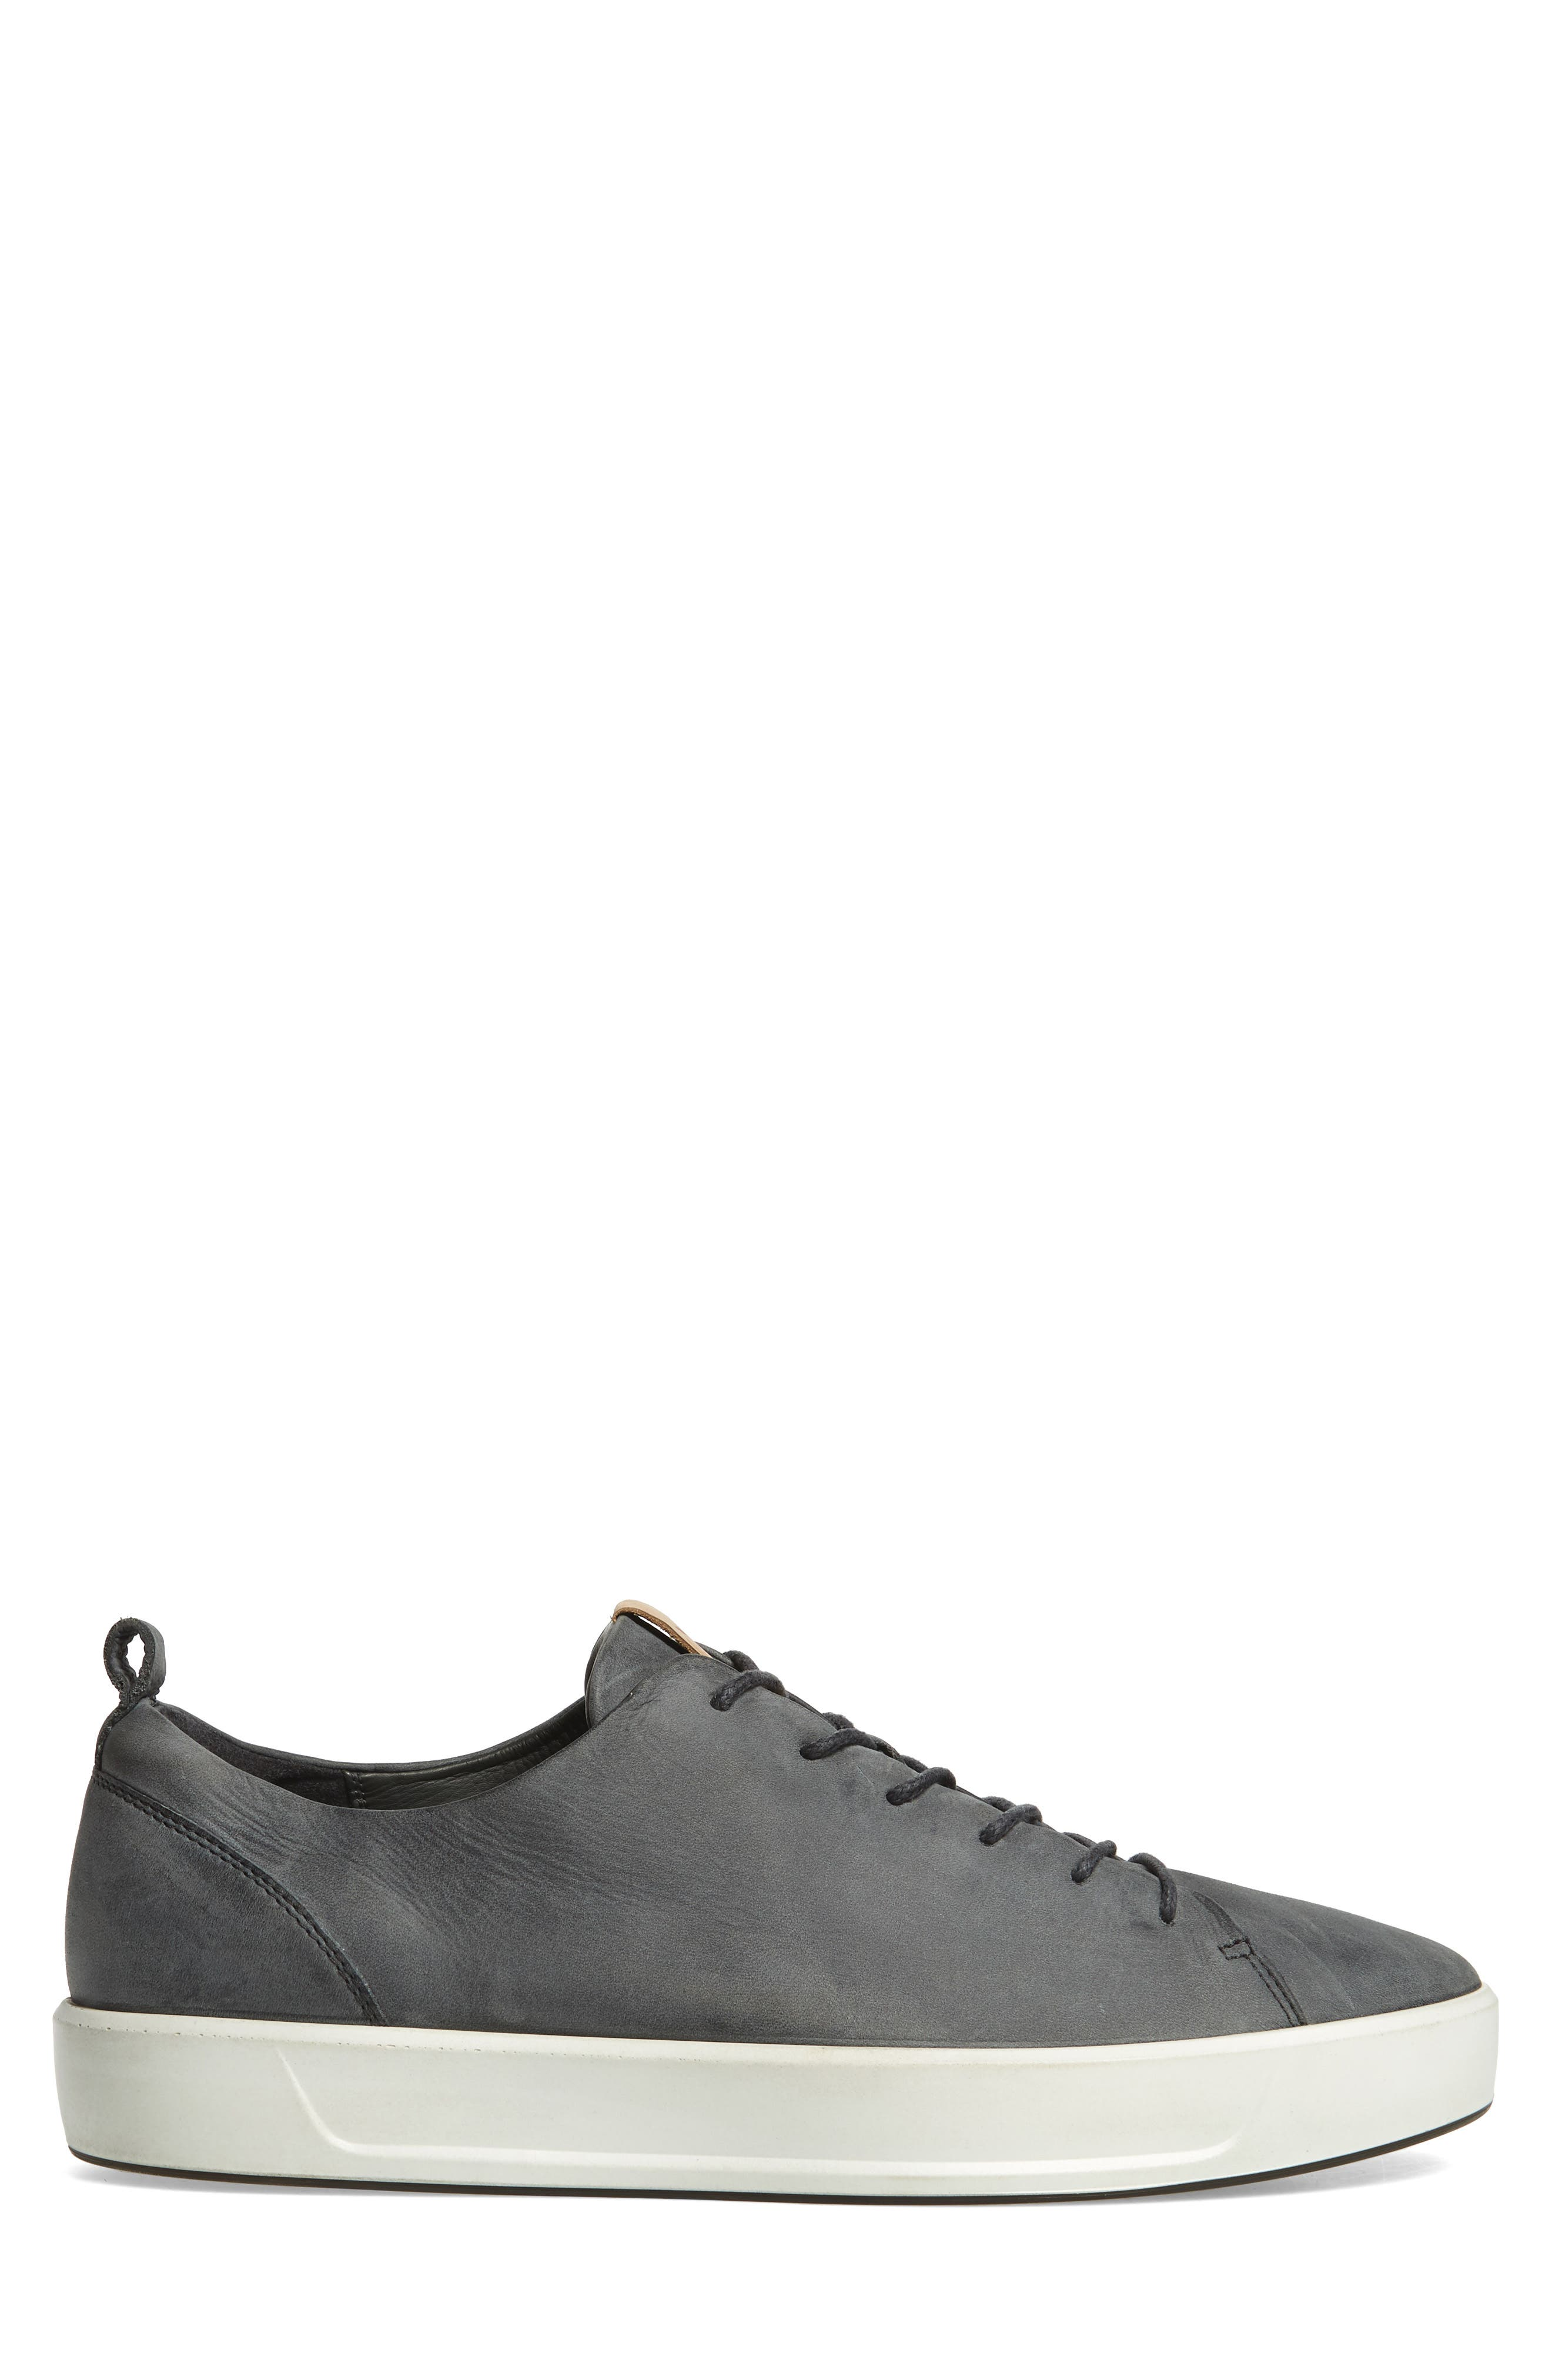 Soft 8 Sneaker,                             Alternate thumbnail 3, color,                             DARK SHADOW LEATHER